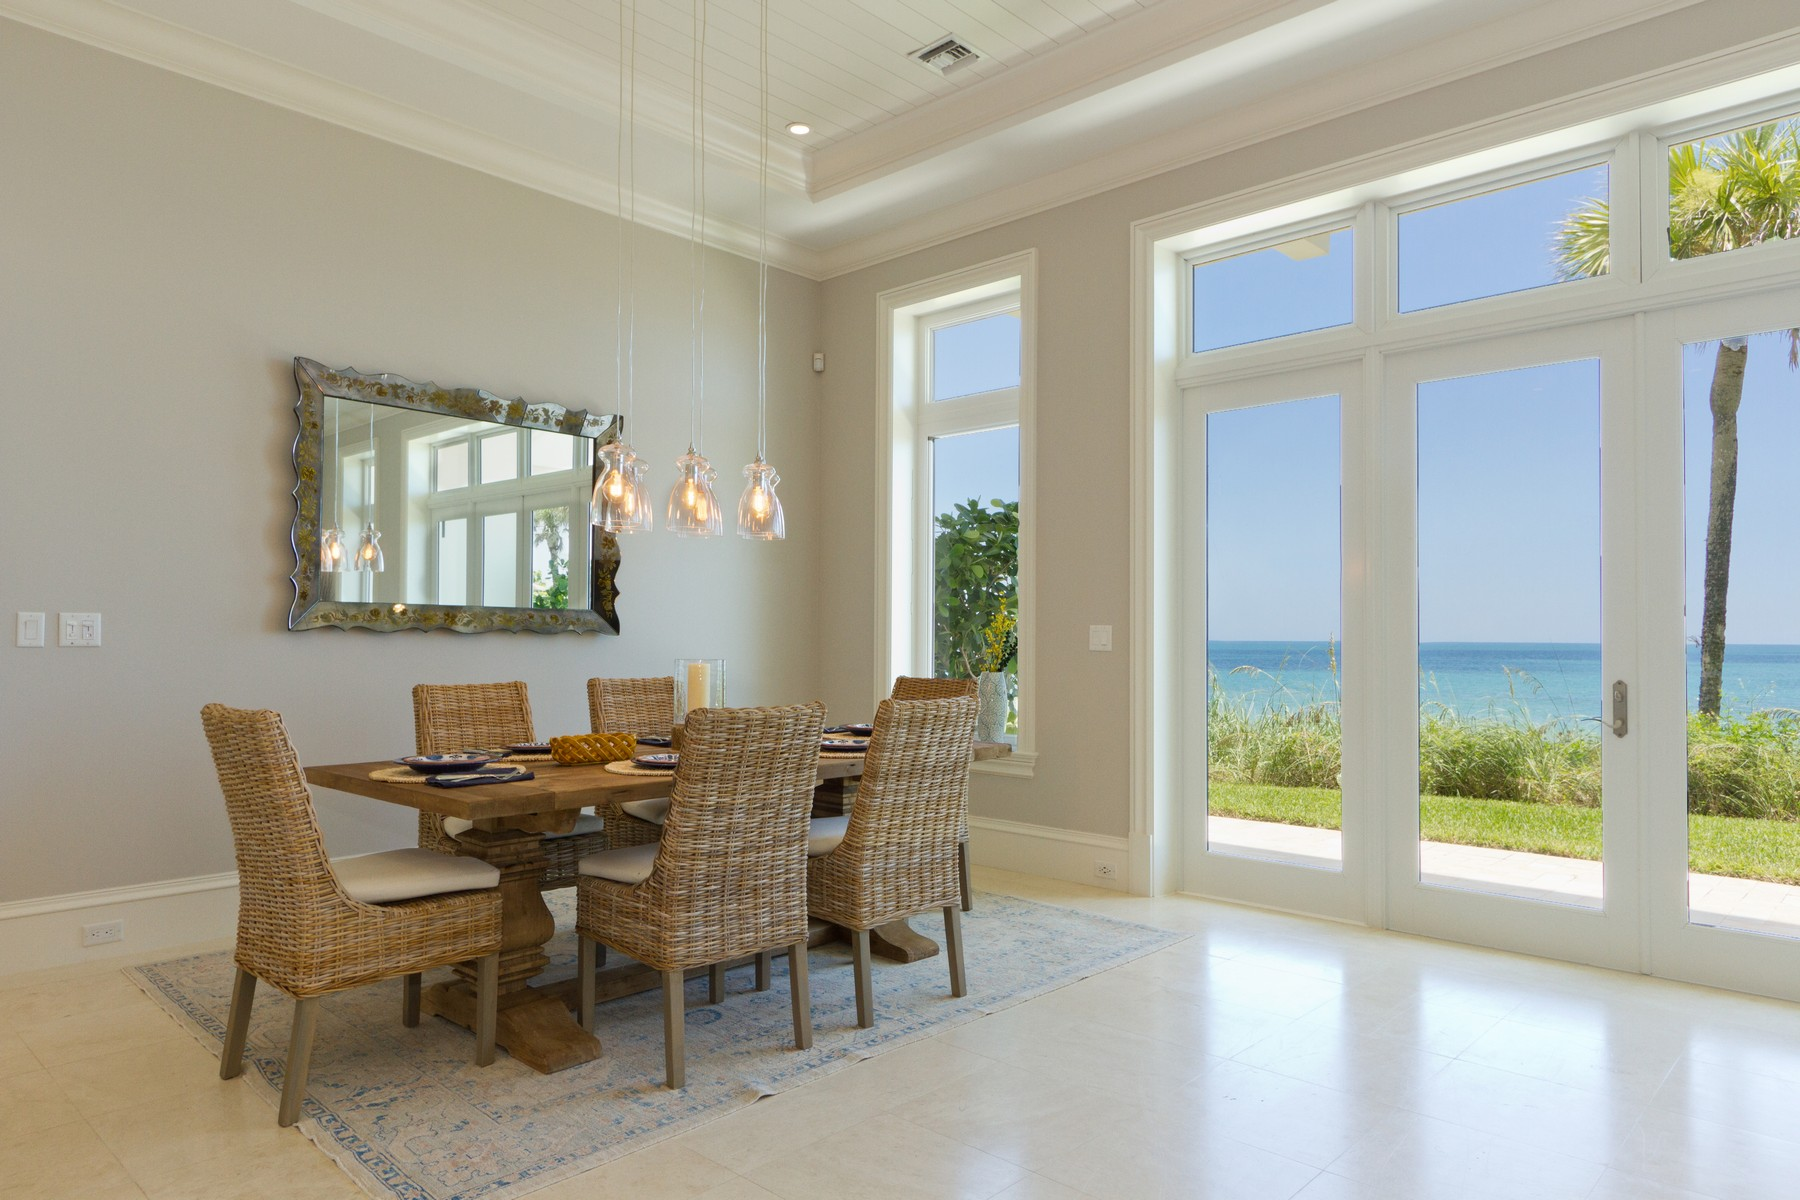 Additional photo for property listing at Dream Beach Home 1025 Gayfeather Lane Vero Beach, Florida 32963 United States